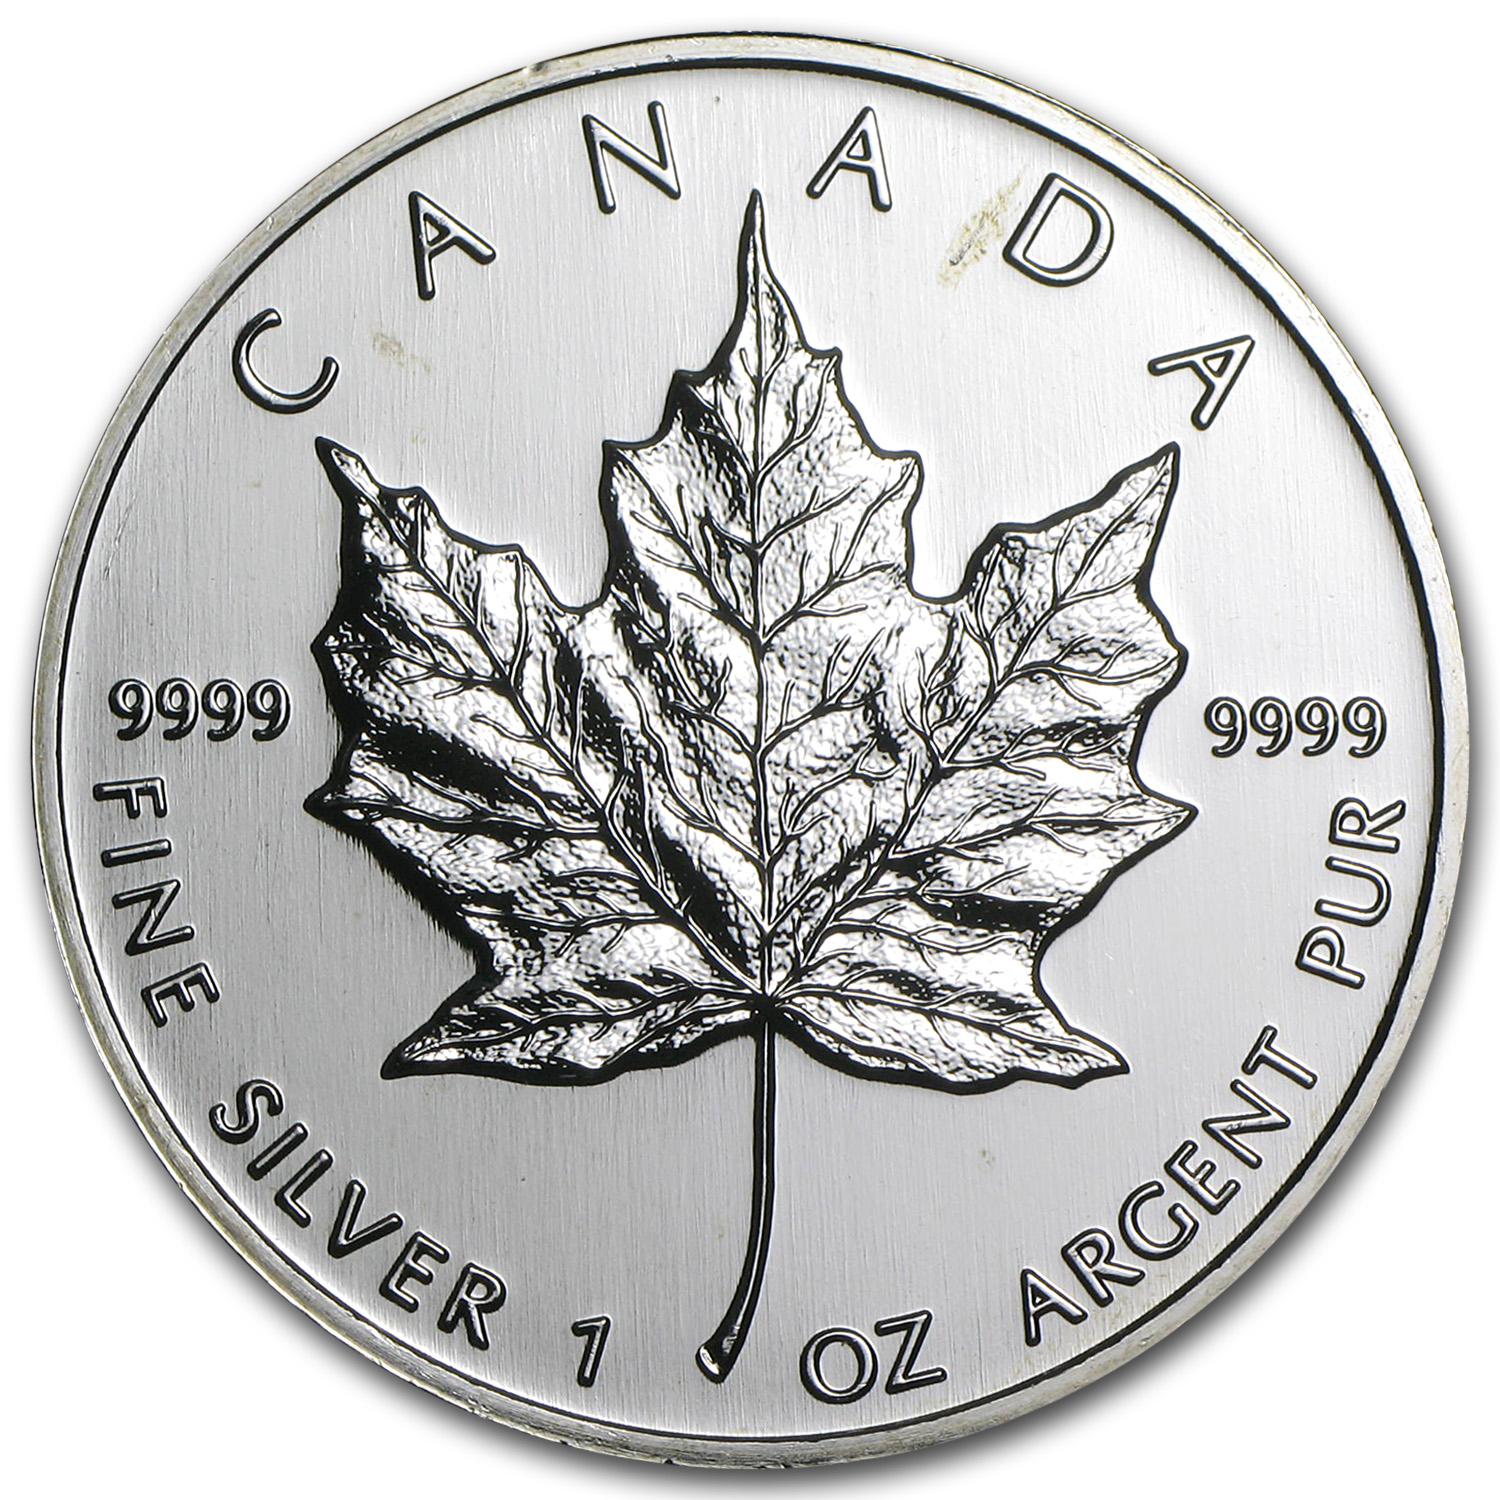 1999 Canada 1 oz Silver Maple Leaf BU